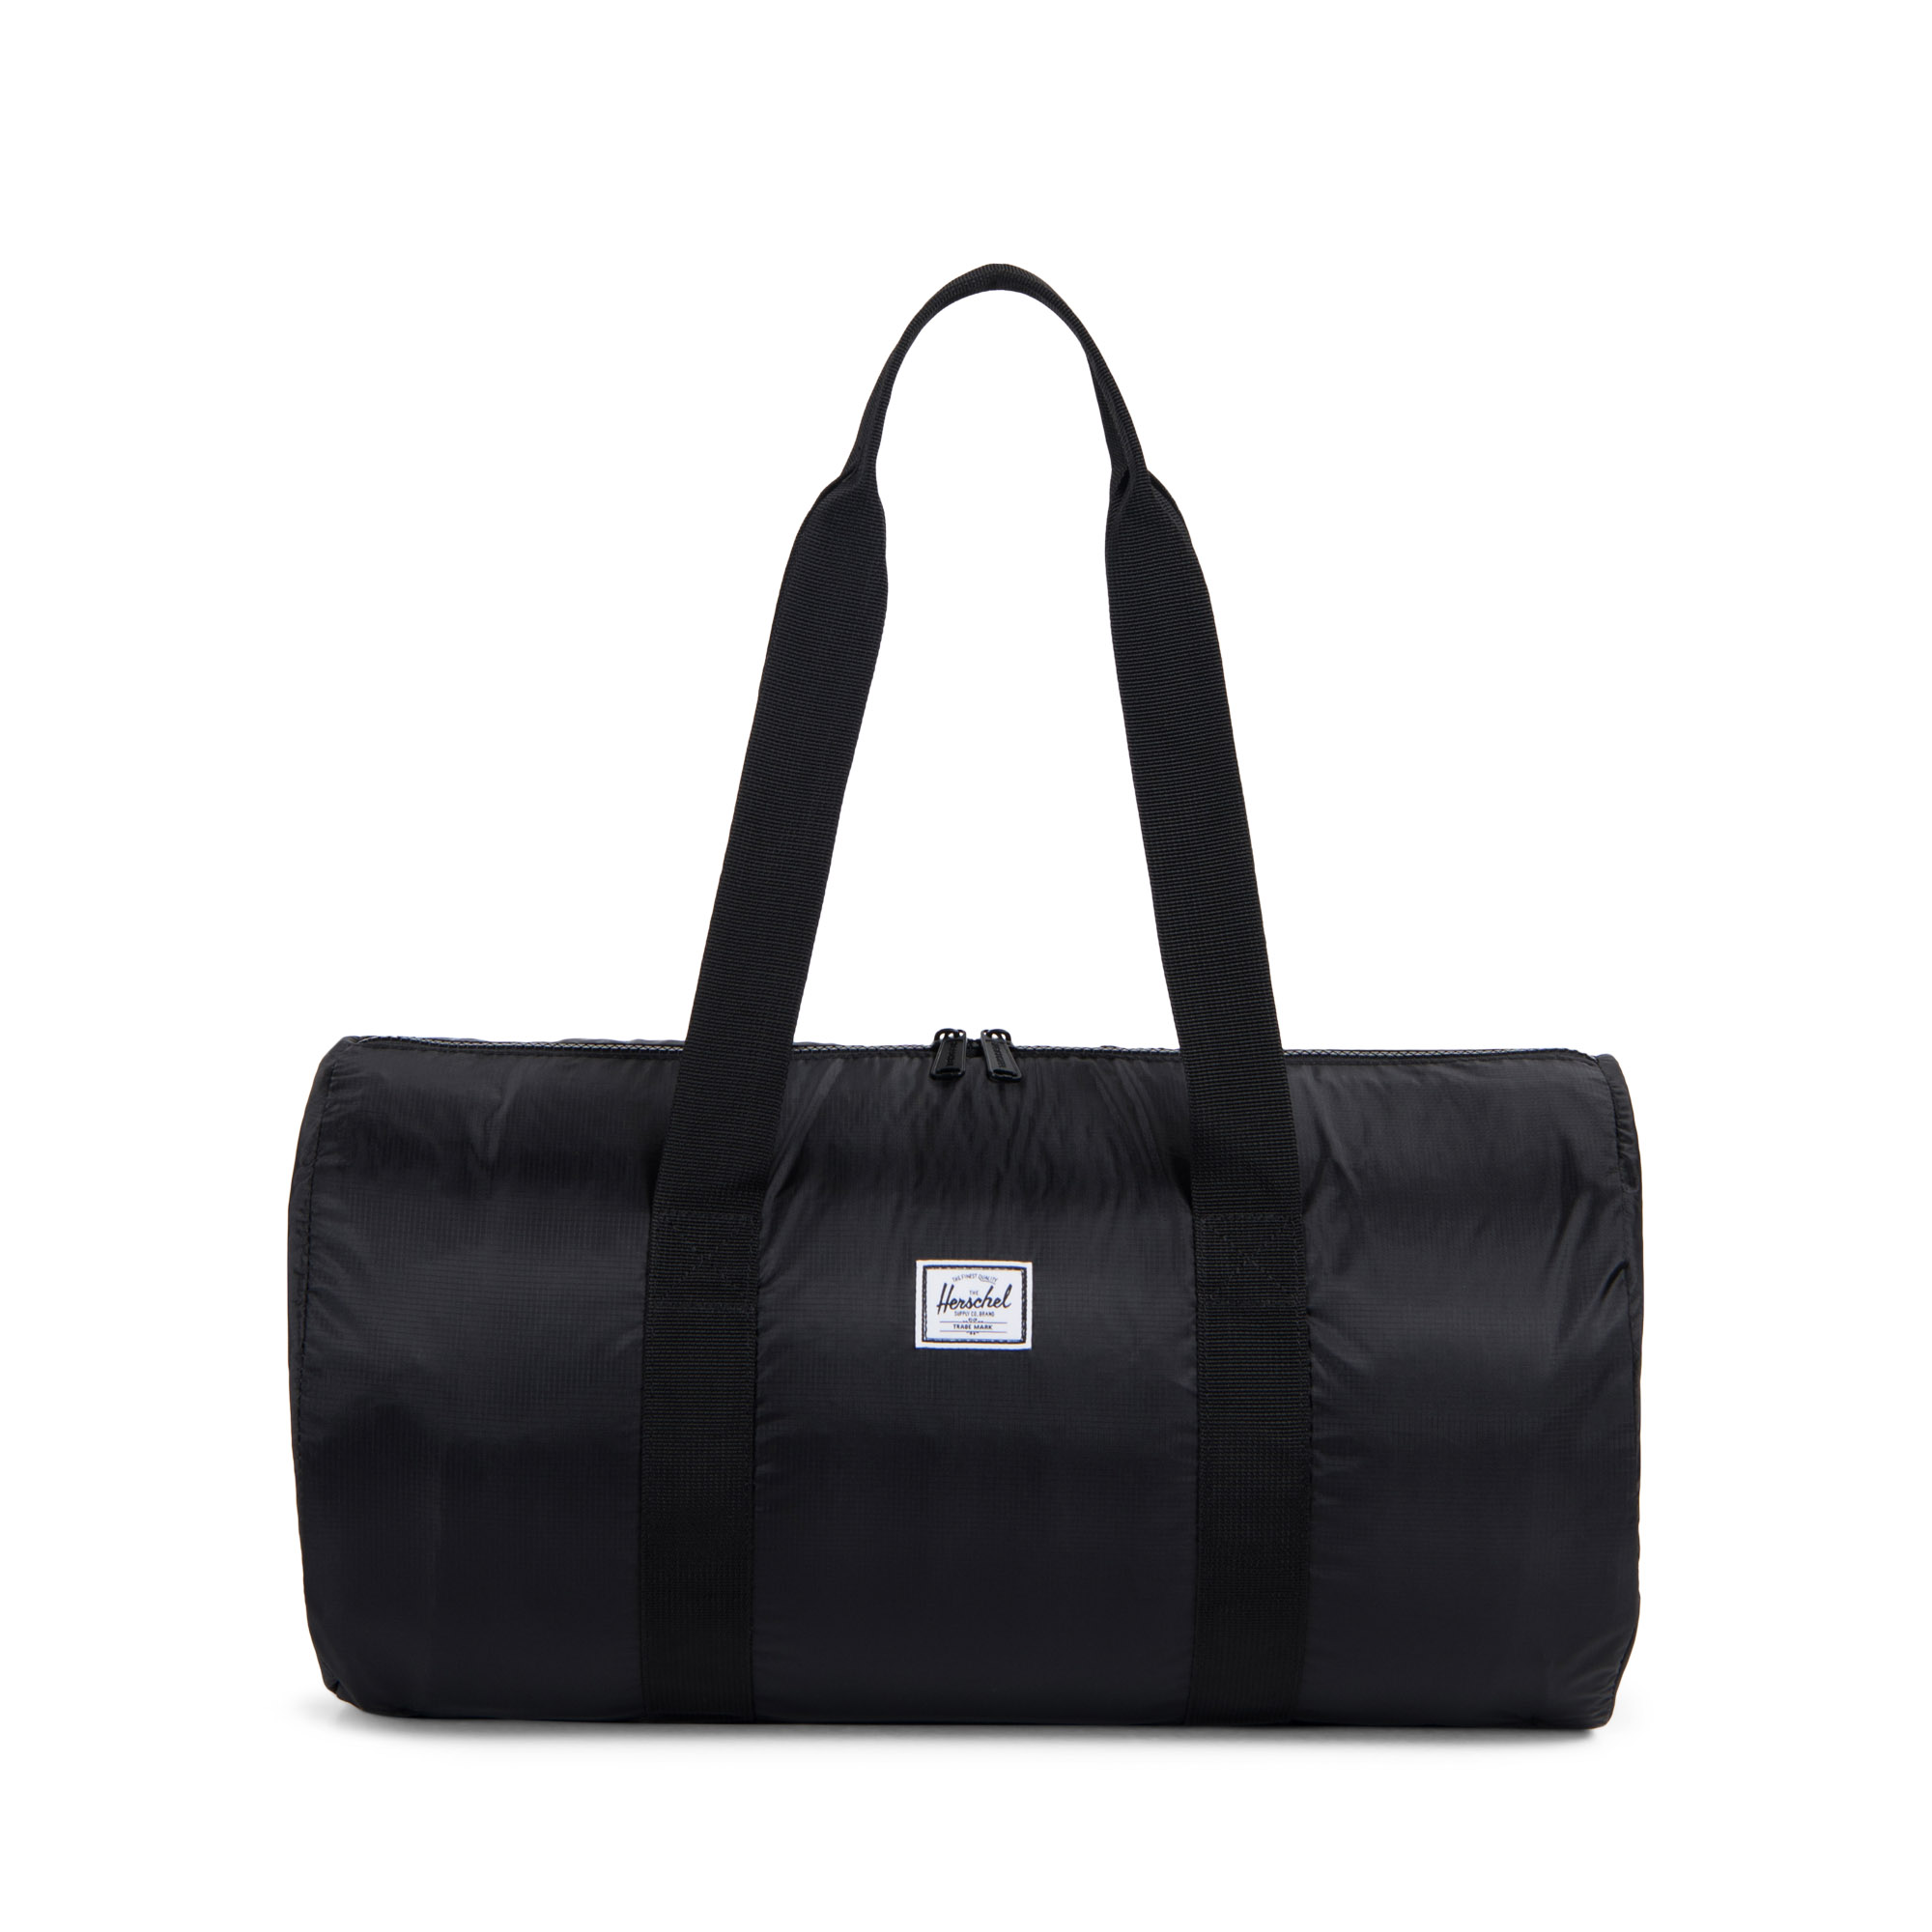 124395f2513 Packable Duffle